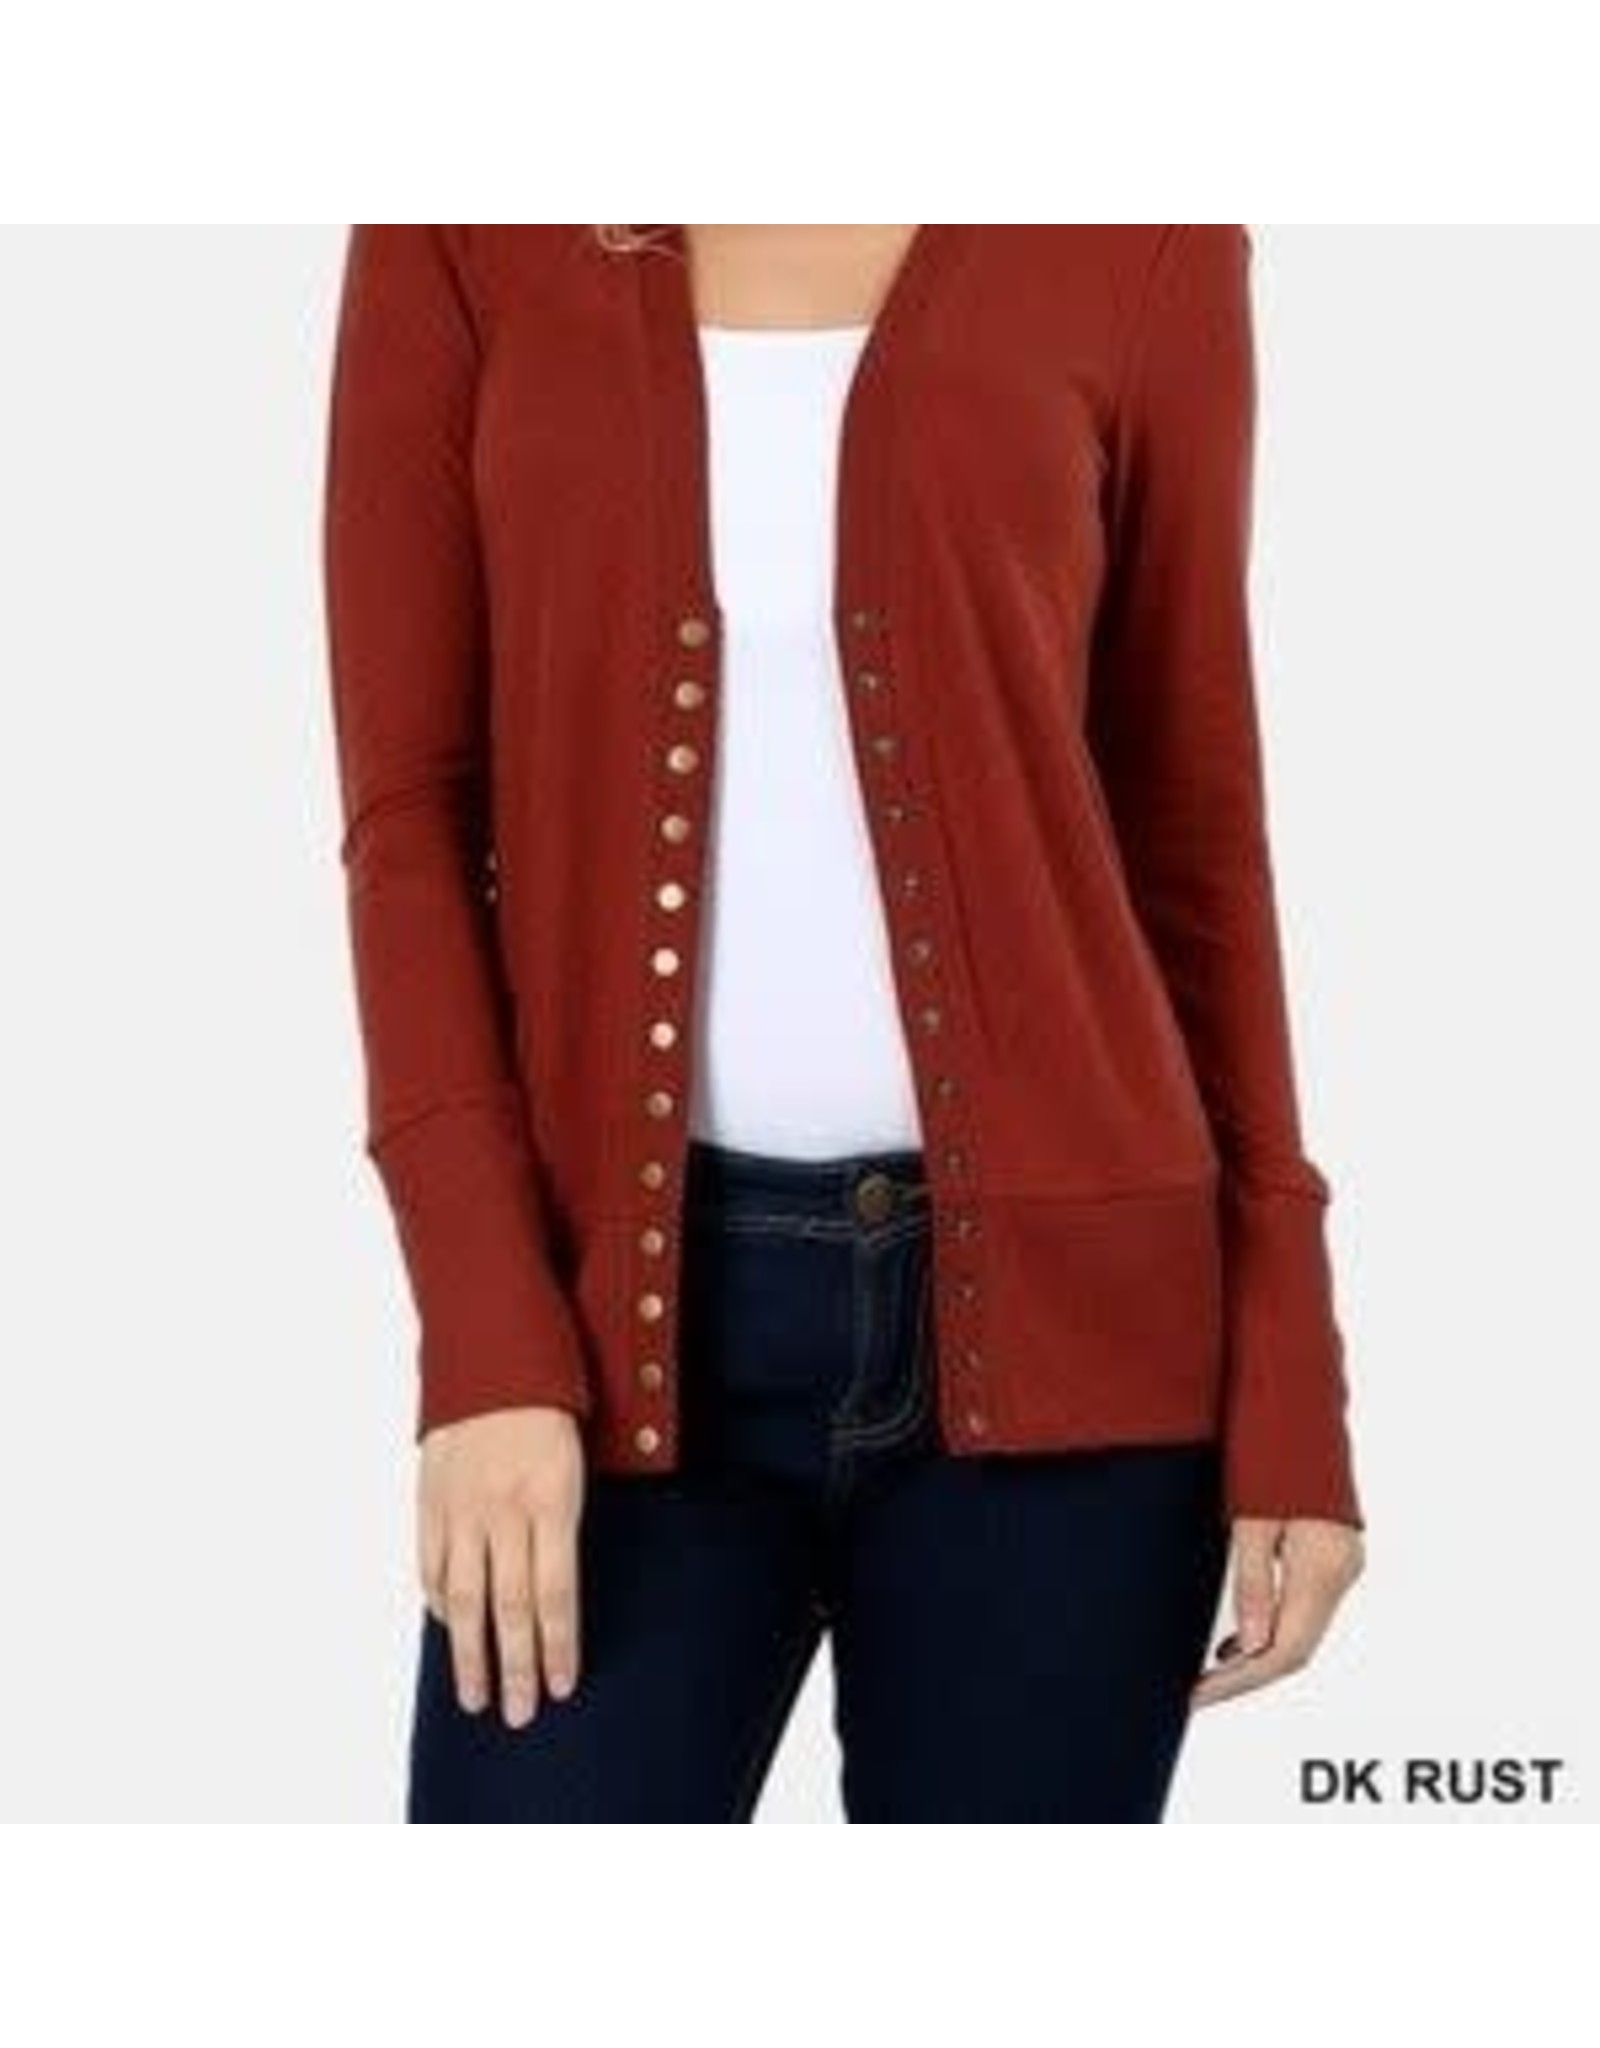 DK RUST SNAP BUTTON SWEATER CARDIGAN WITH RIBBED DETAIL